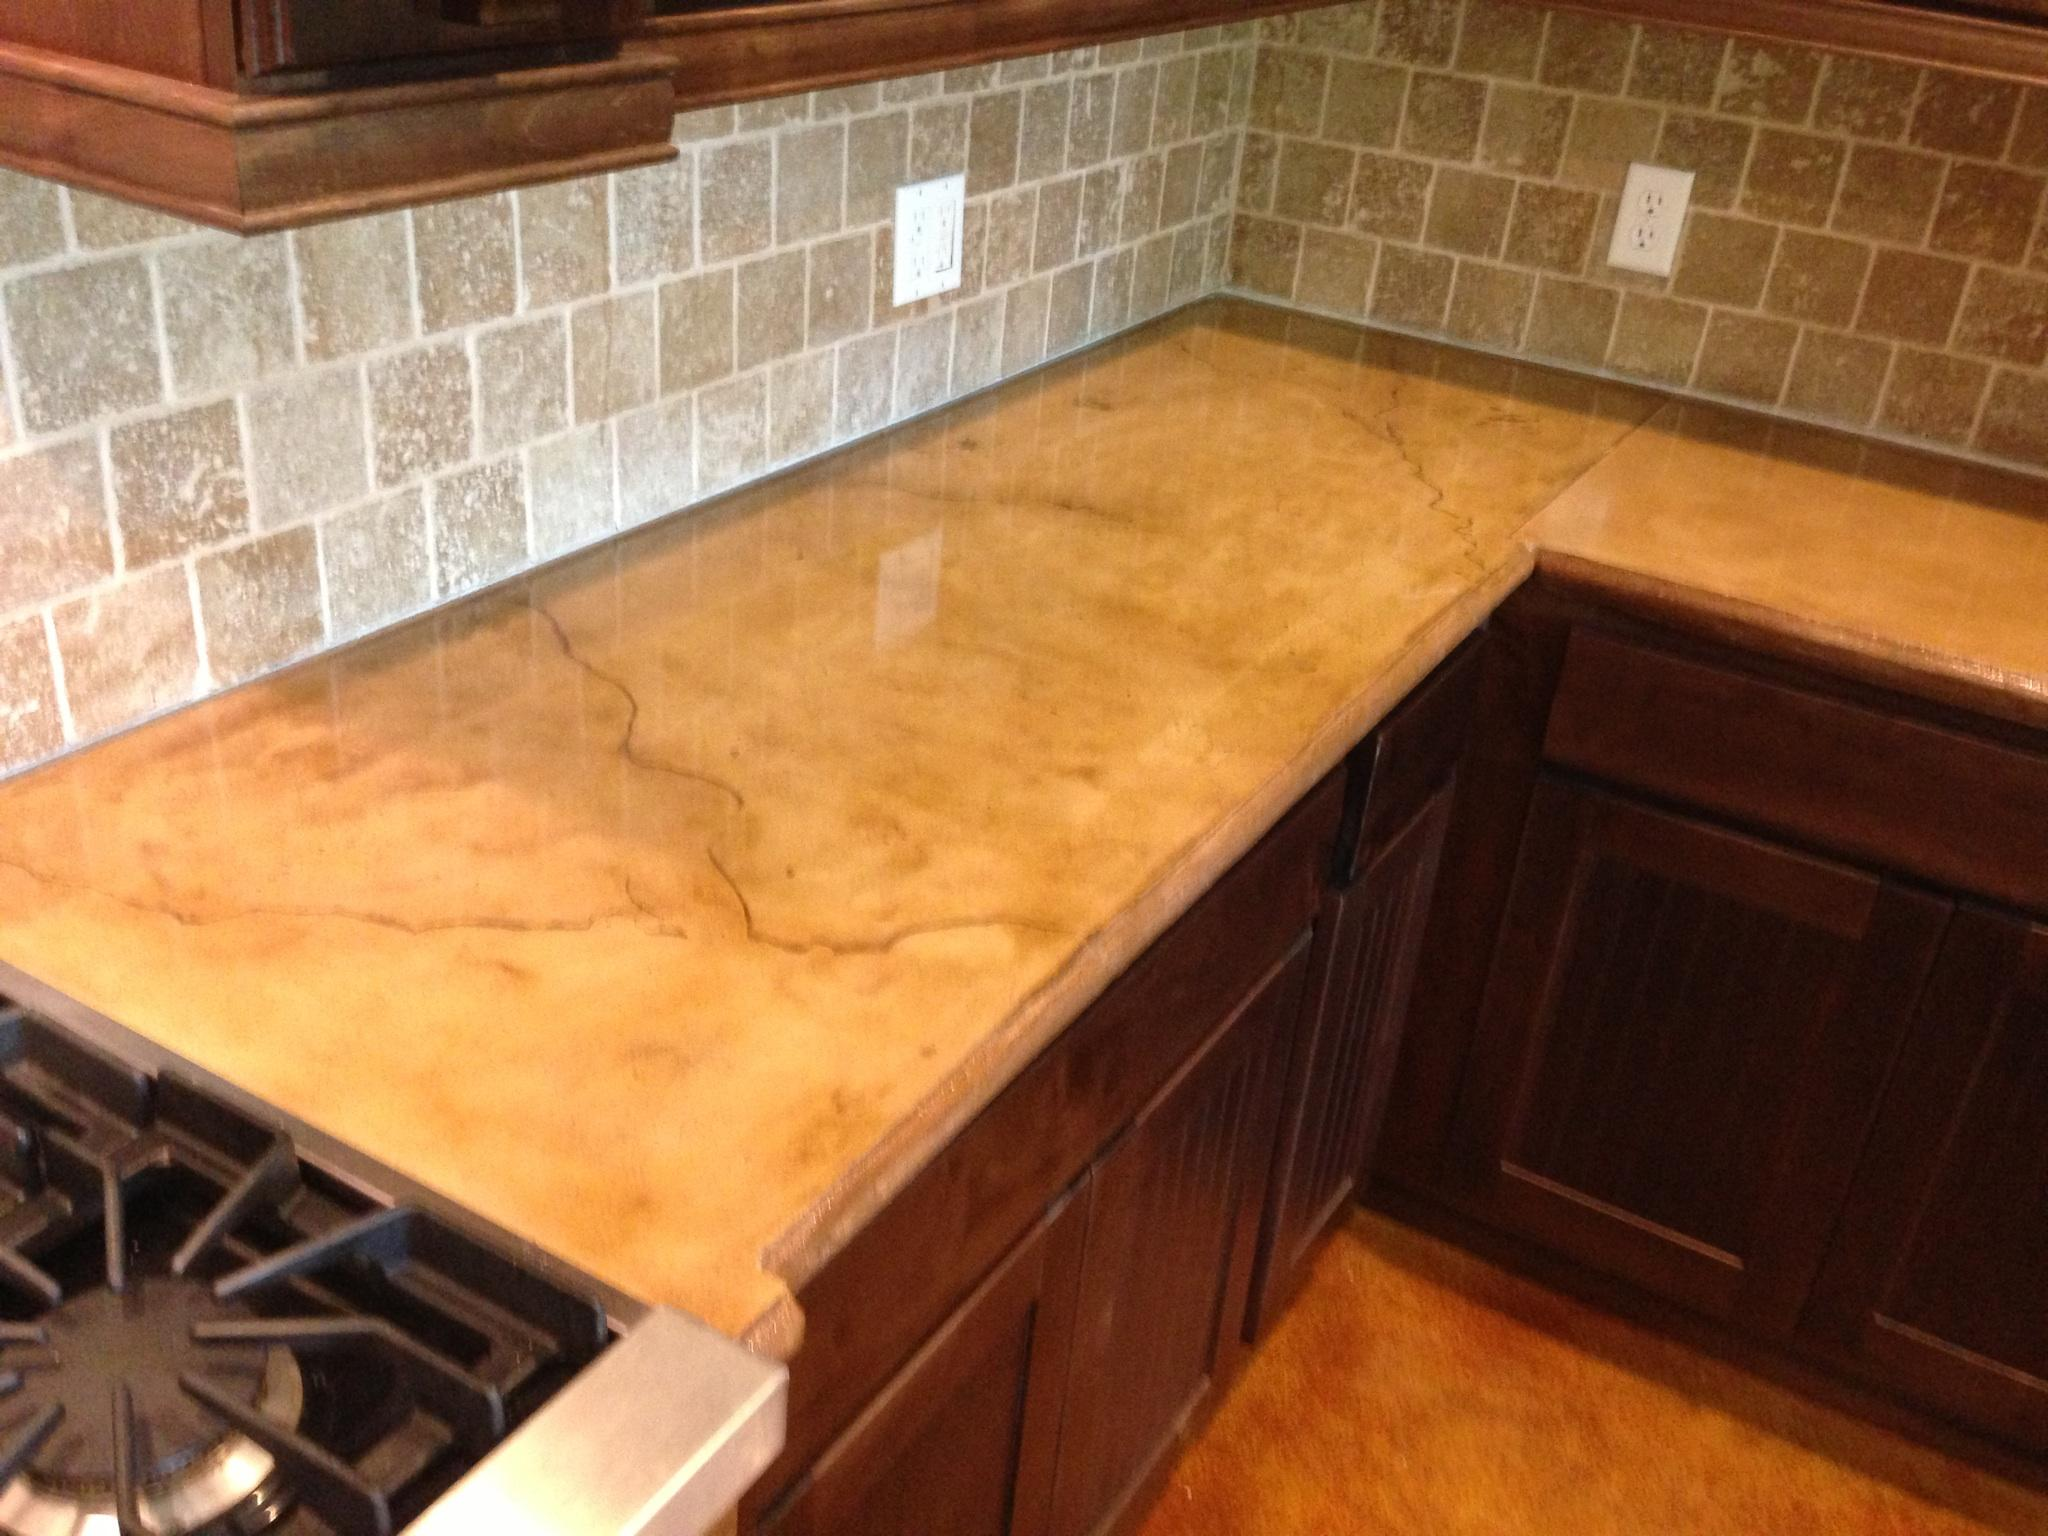 Concrete Installer Discovers Concrete Countertops - Surecrete Products